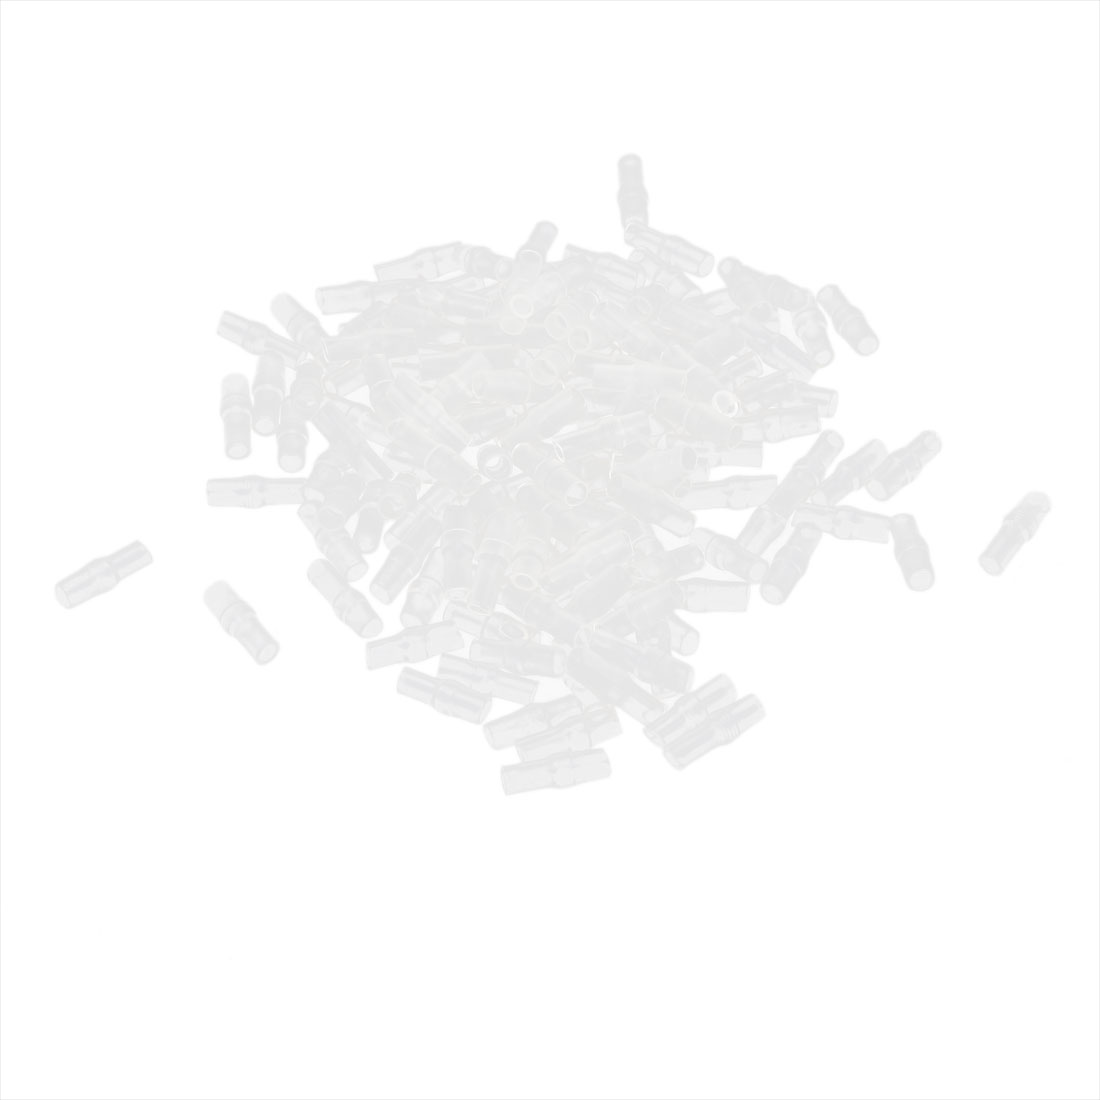 150 Pcs Clear Soft PVC 4mm Dia Wire Terminal Sleeves Insulating Covers Caps